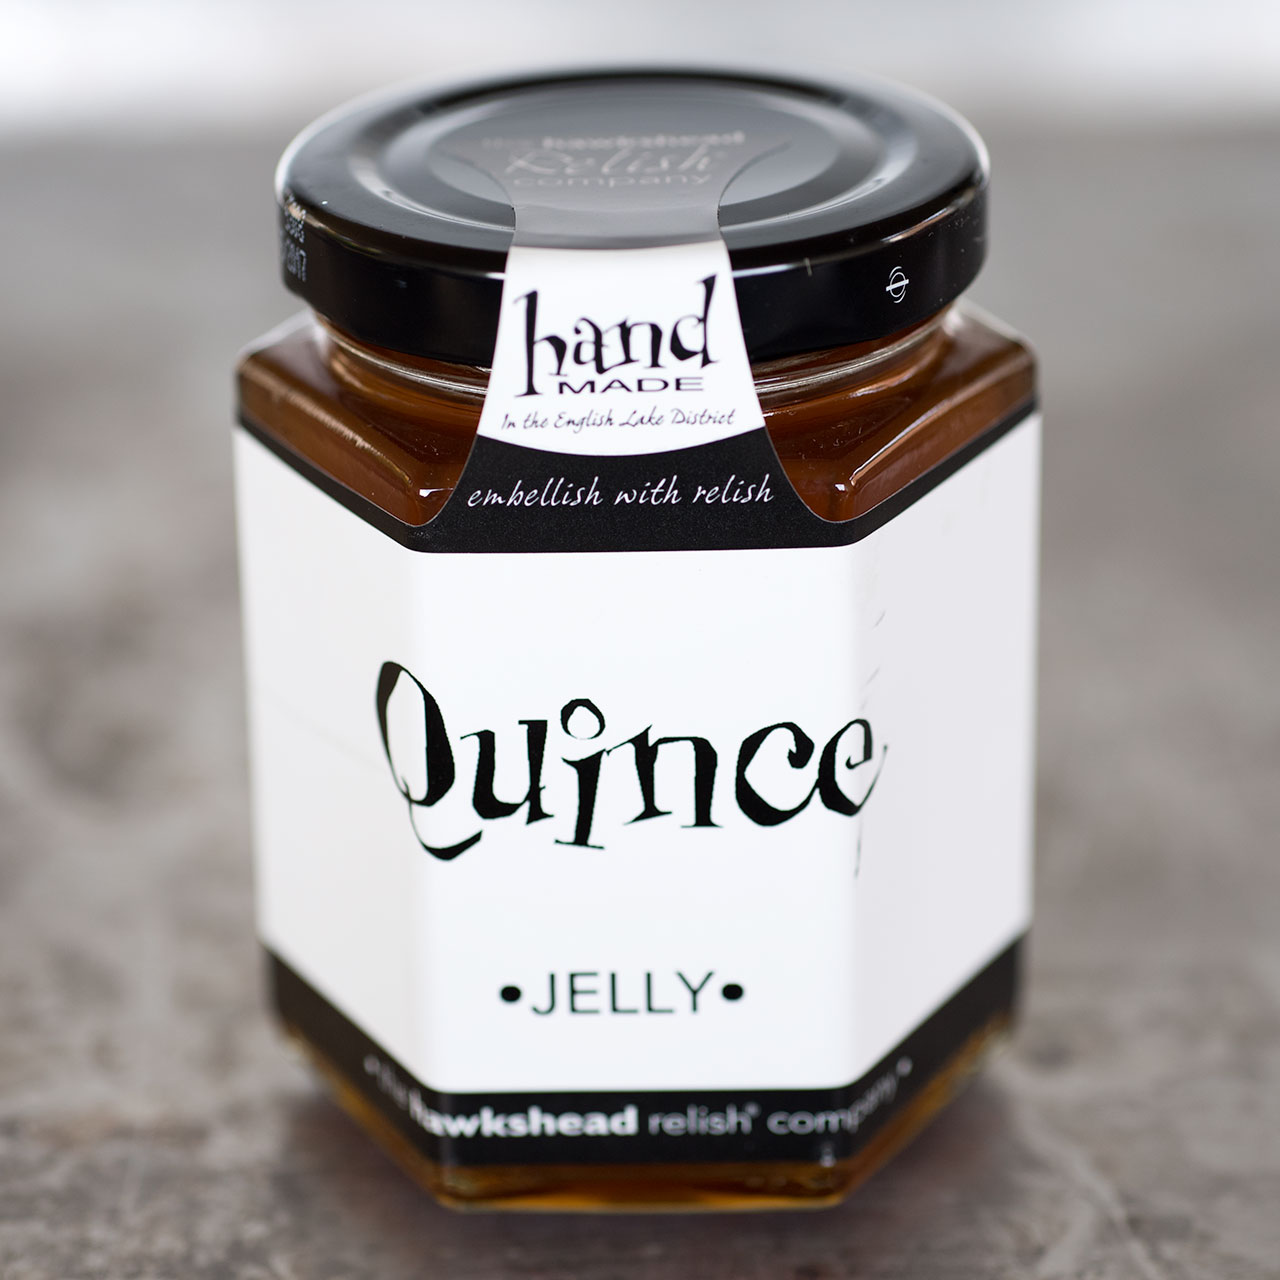 Hawkshead Quince Jelly